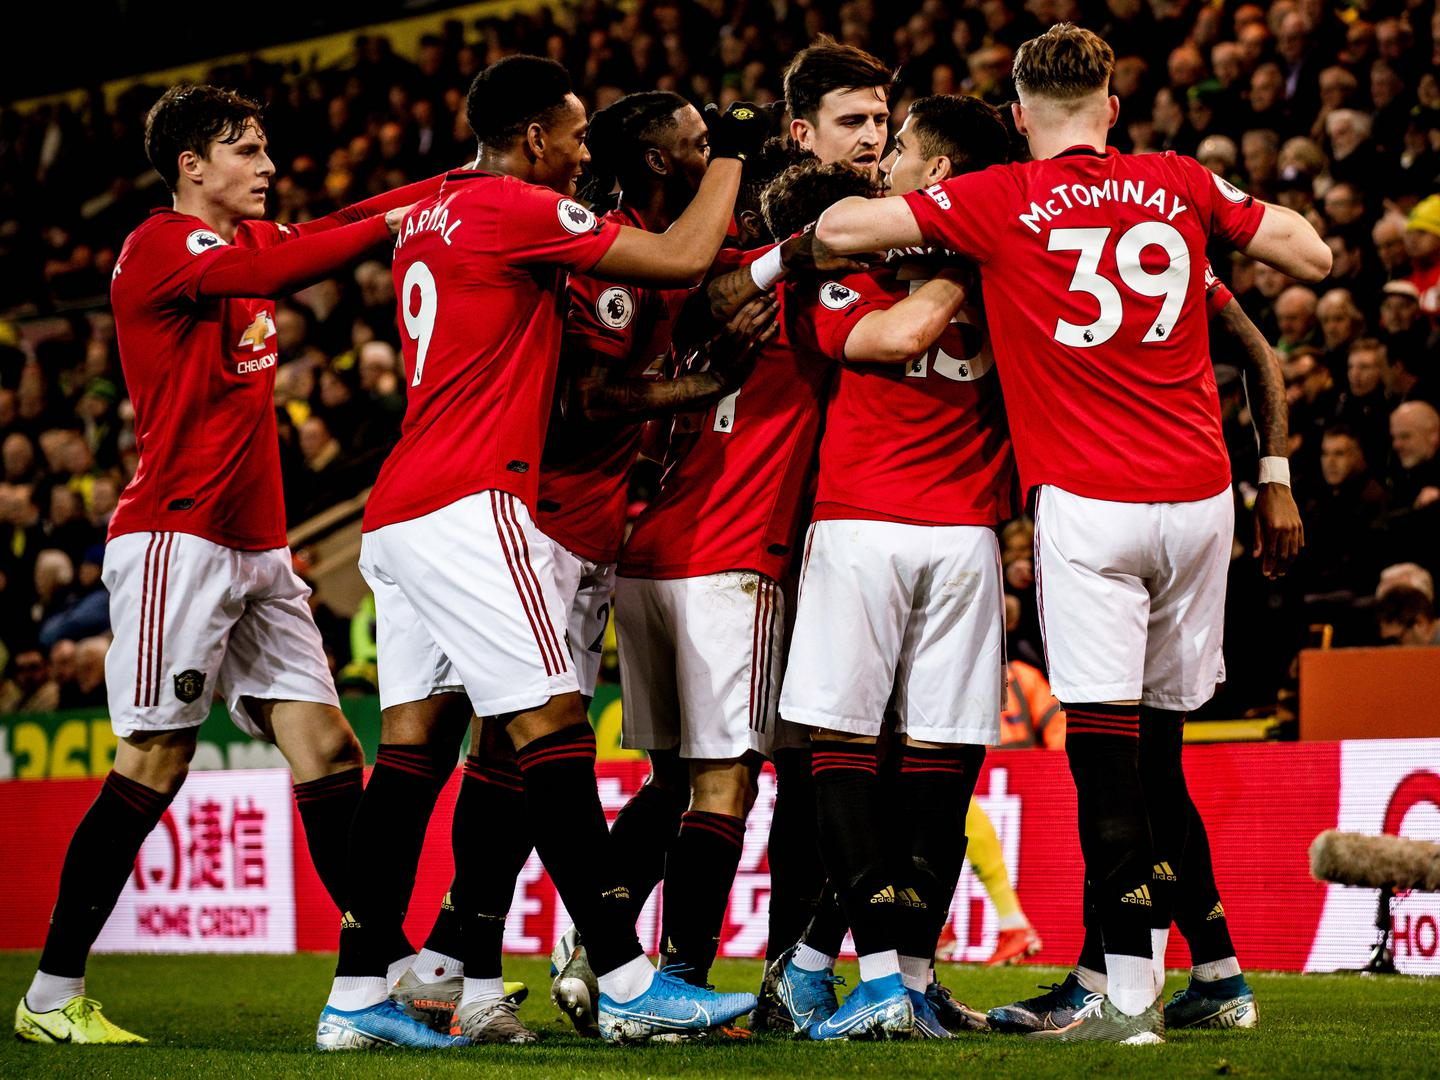 Manchester United players celebrate a goal against Norwich City